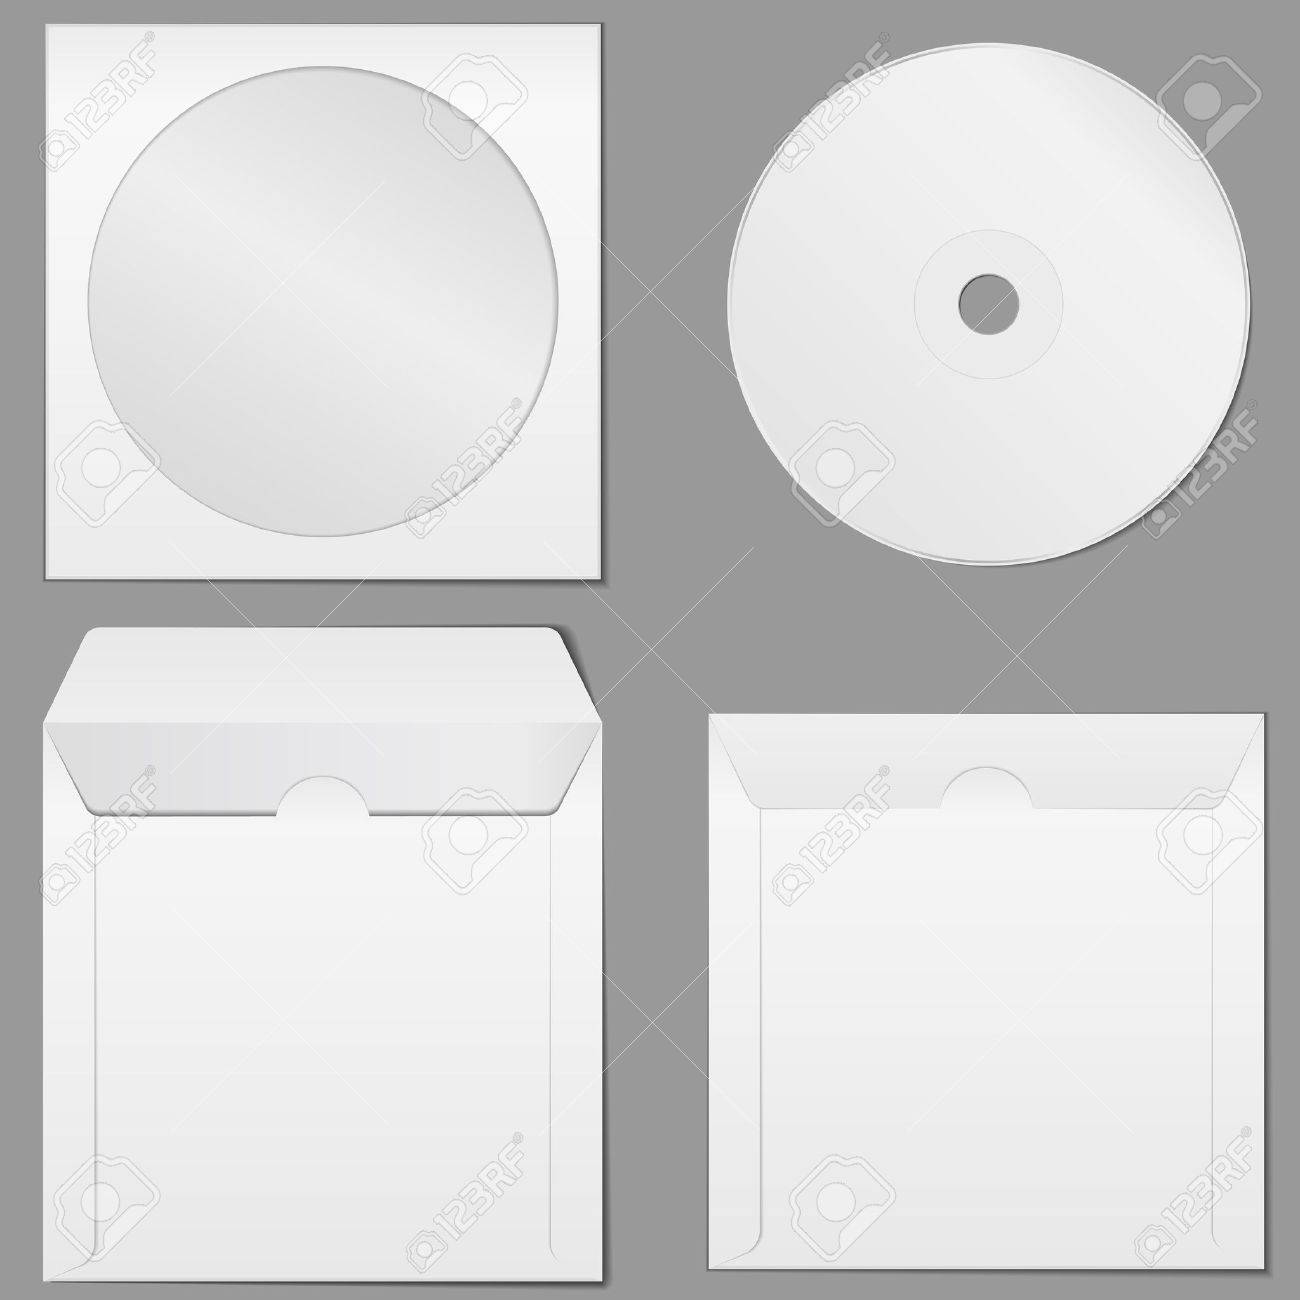 CD Case Royalty Free Cliparts, Vectors, And Stock Illustration ...